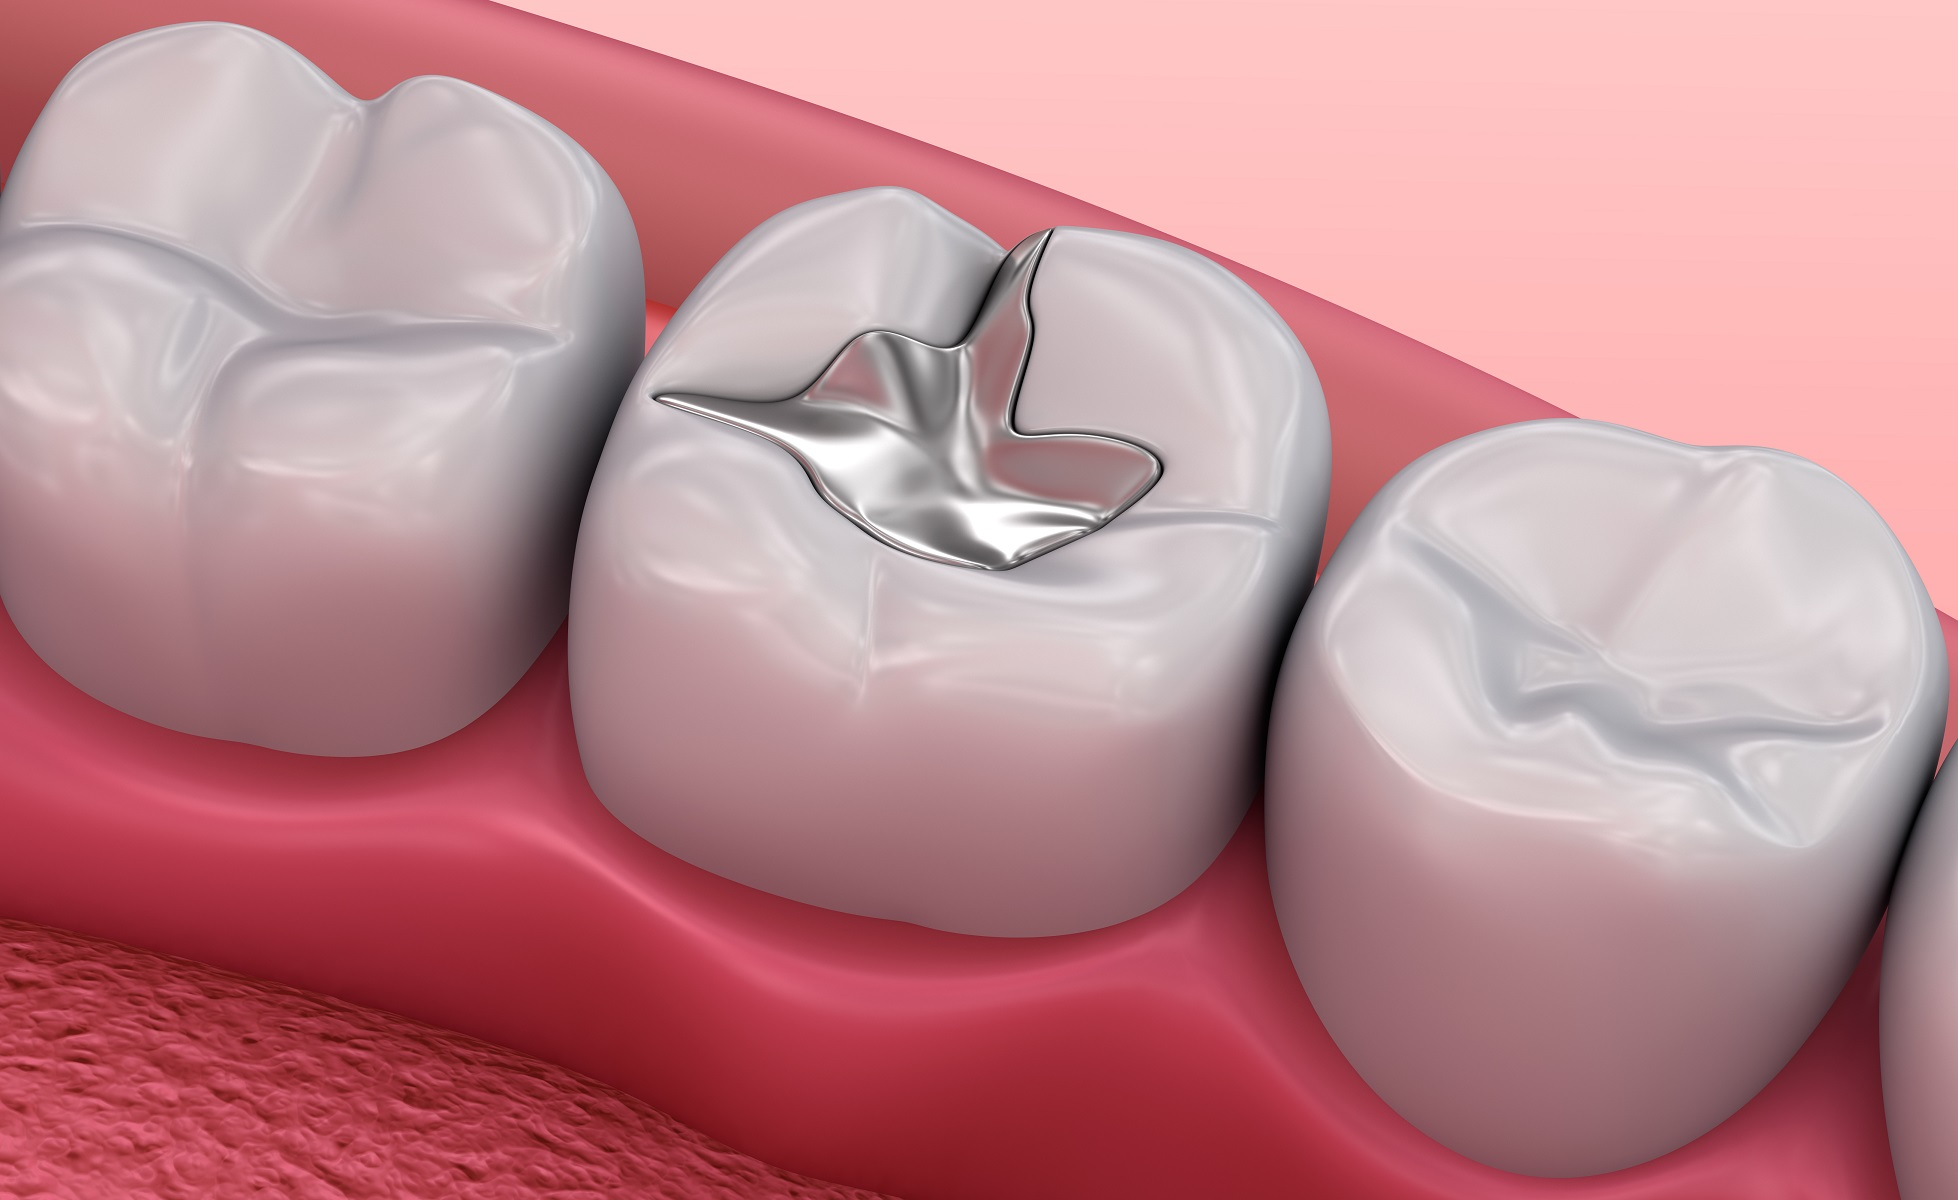 Restorations (Fillings) - by Dental Above